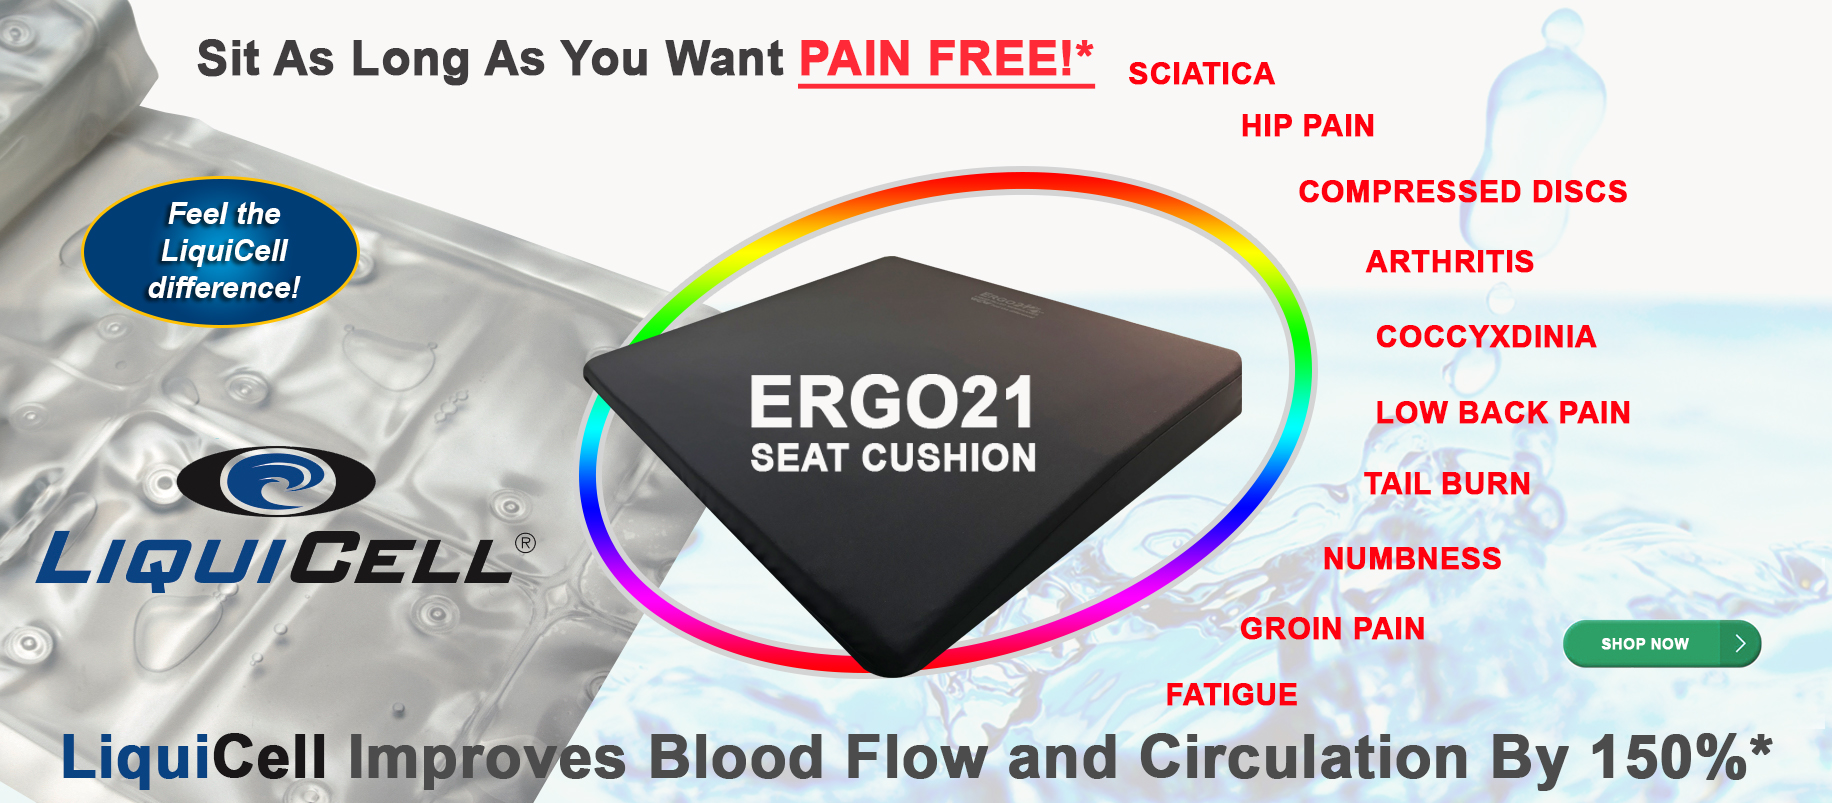 Bed Sore Cushions Ergo21 Seat Cushion For Pain Relief Better Than Gel Or Foam